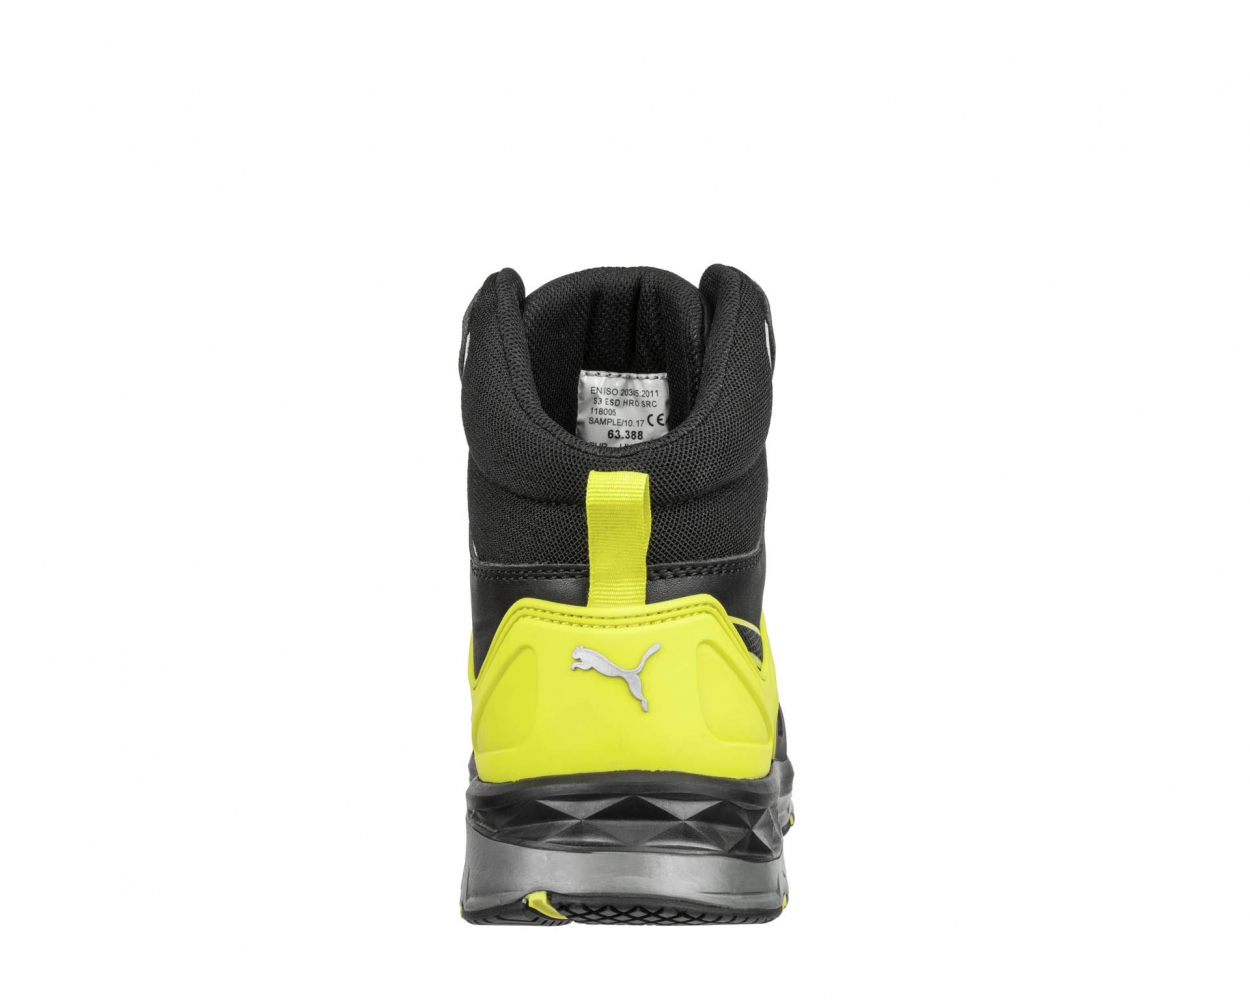 pics/Puma/Motion Protect/puma-633880-velocity-safety-boots-yellow-back.jpg